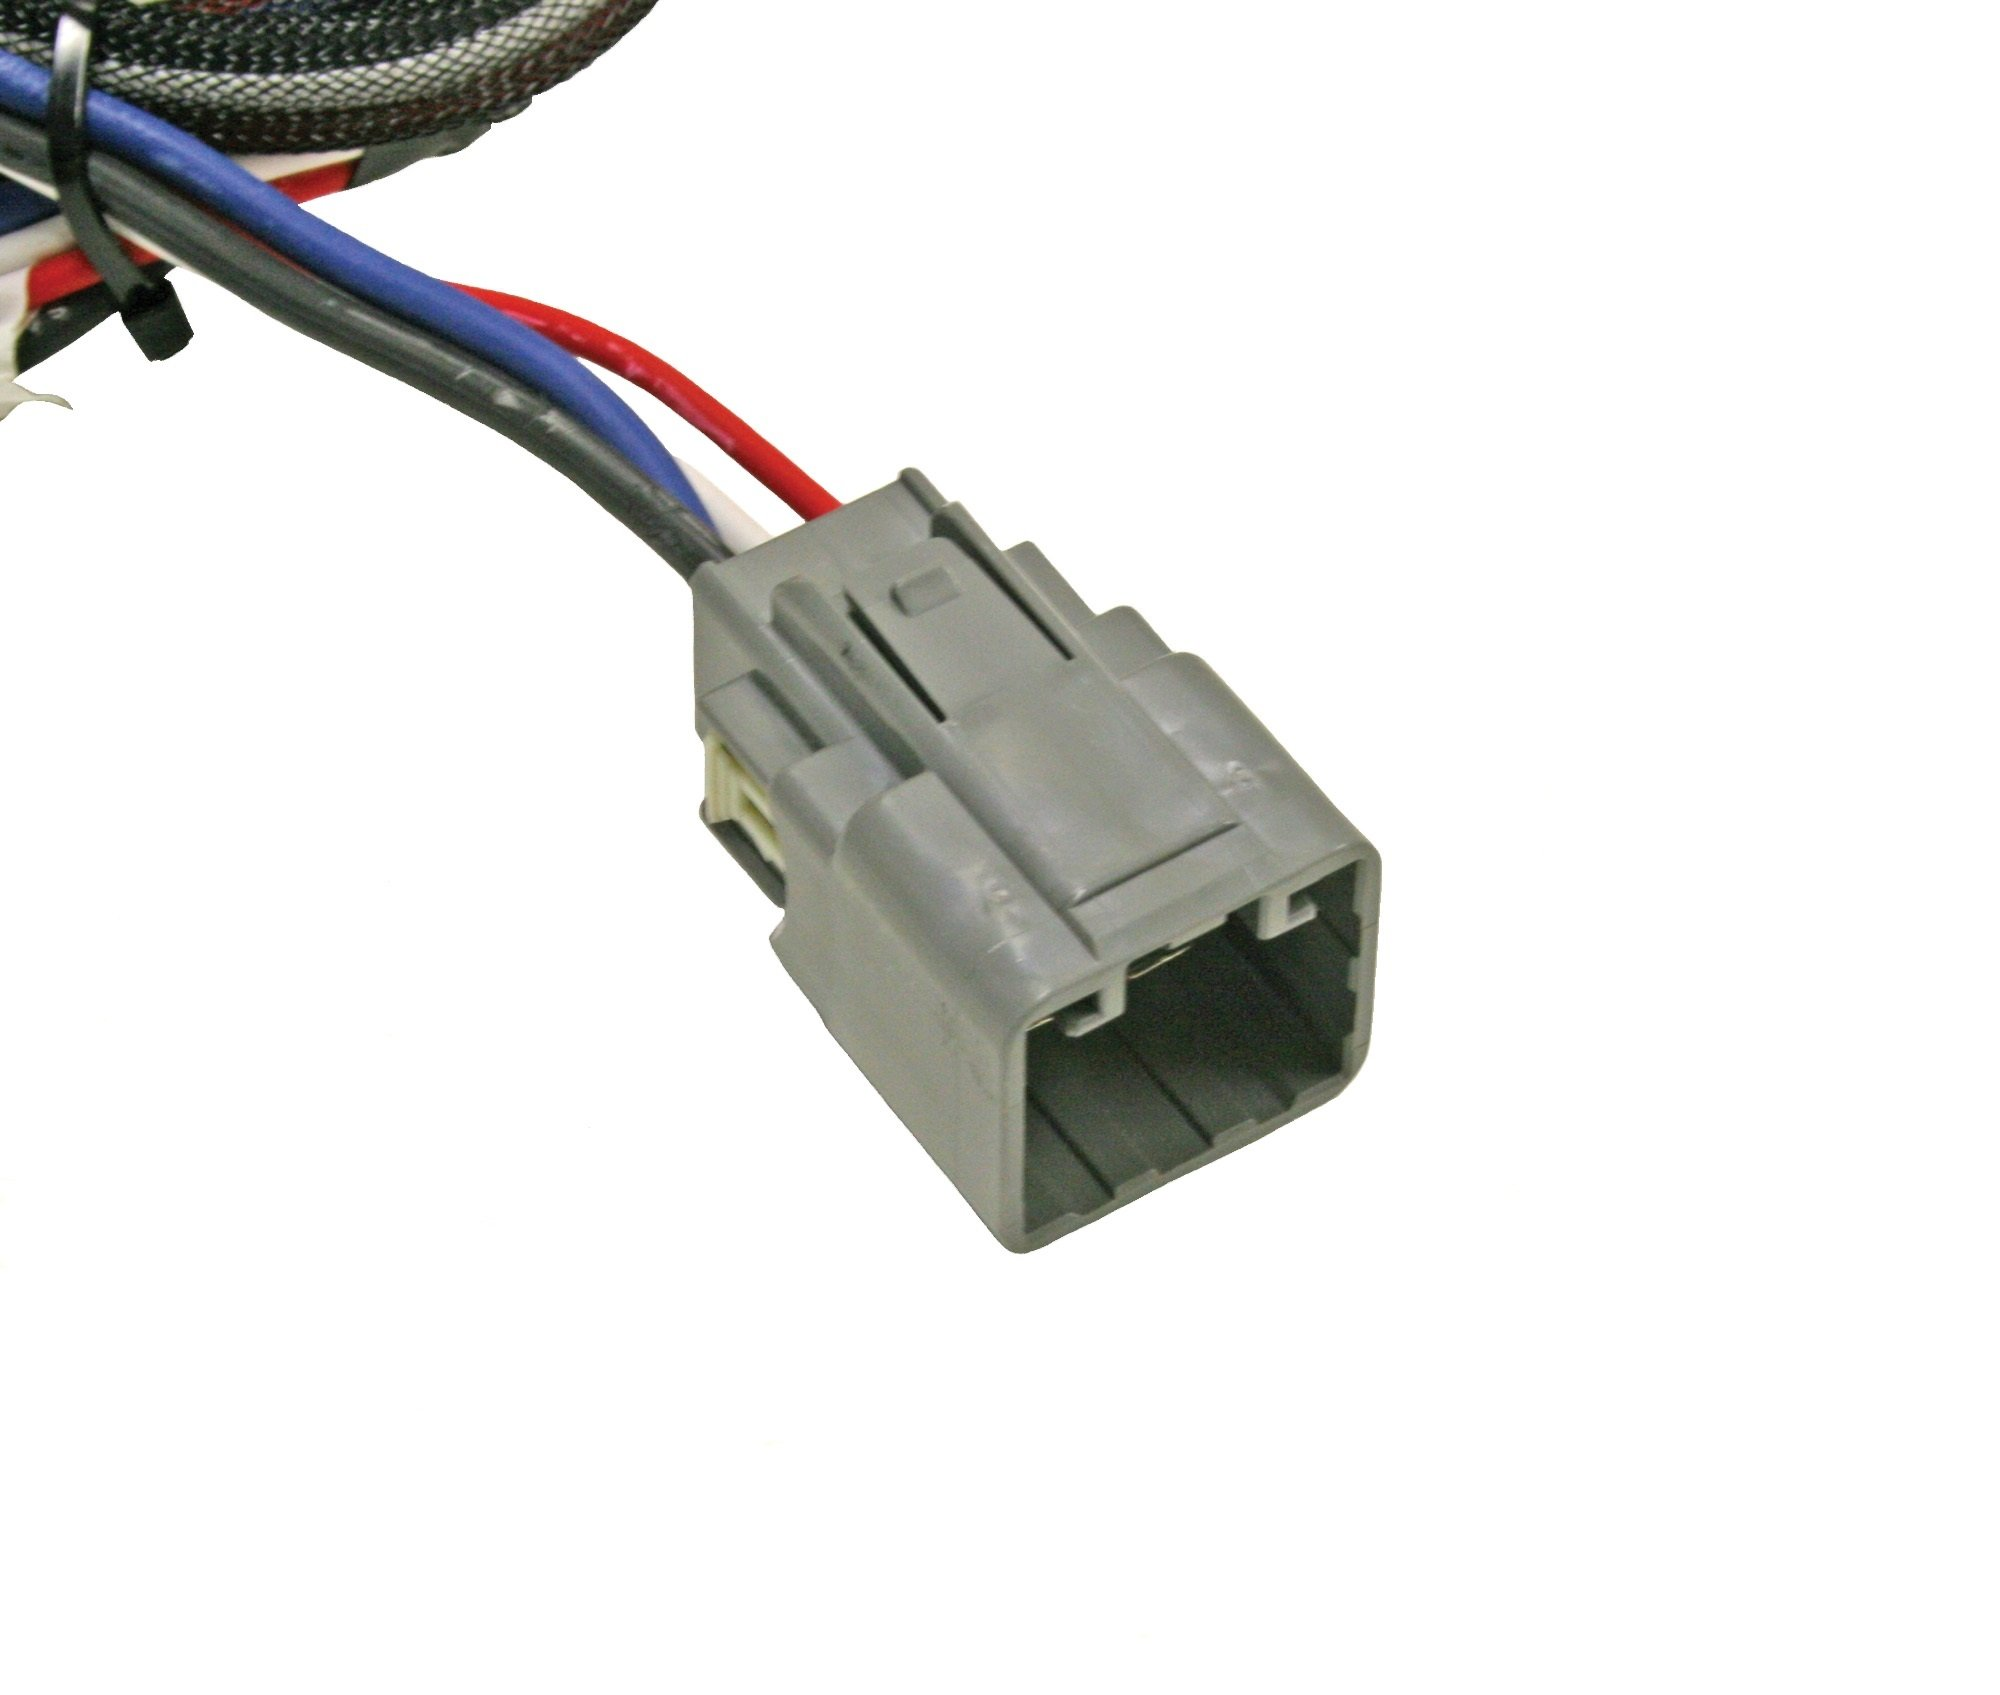 cheap reese wiring harness, find reese wiring harness deals on line reese sway control get quotations · reese towpower 78060 brake control wiring harness for ford super duty